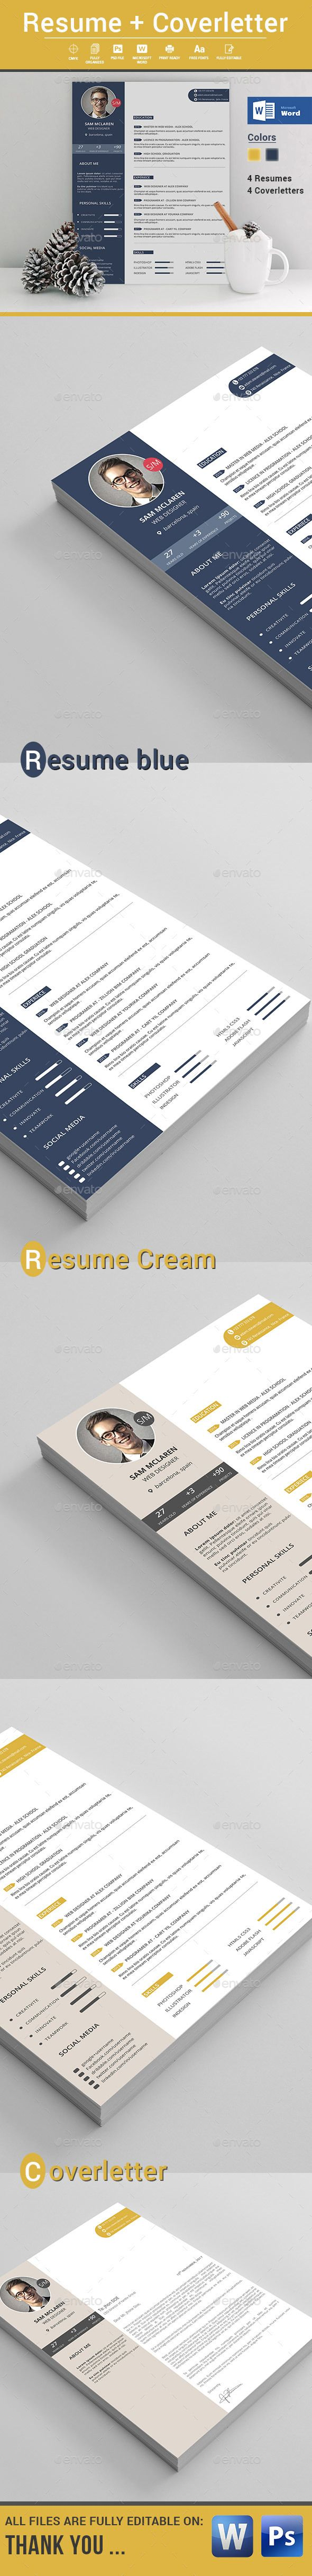 Best Solliciteren Images On   Creative Resume Resume